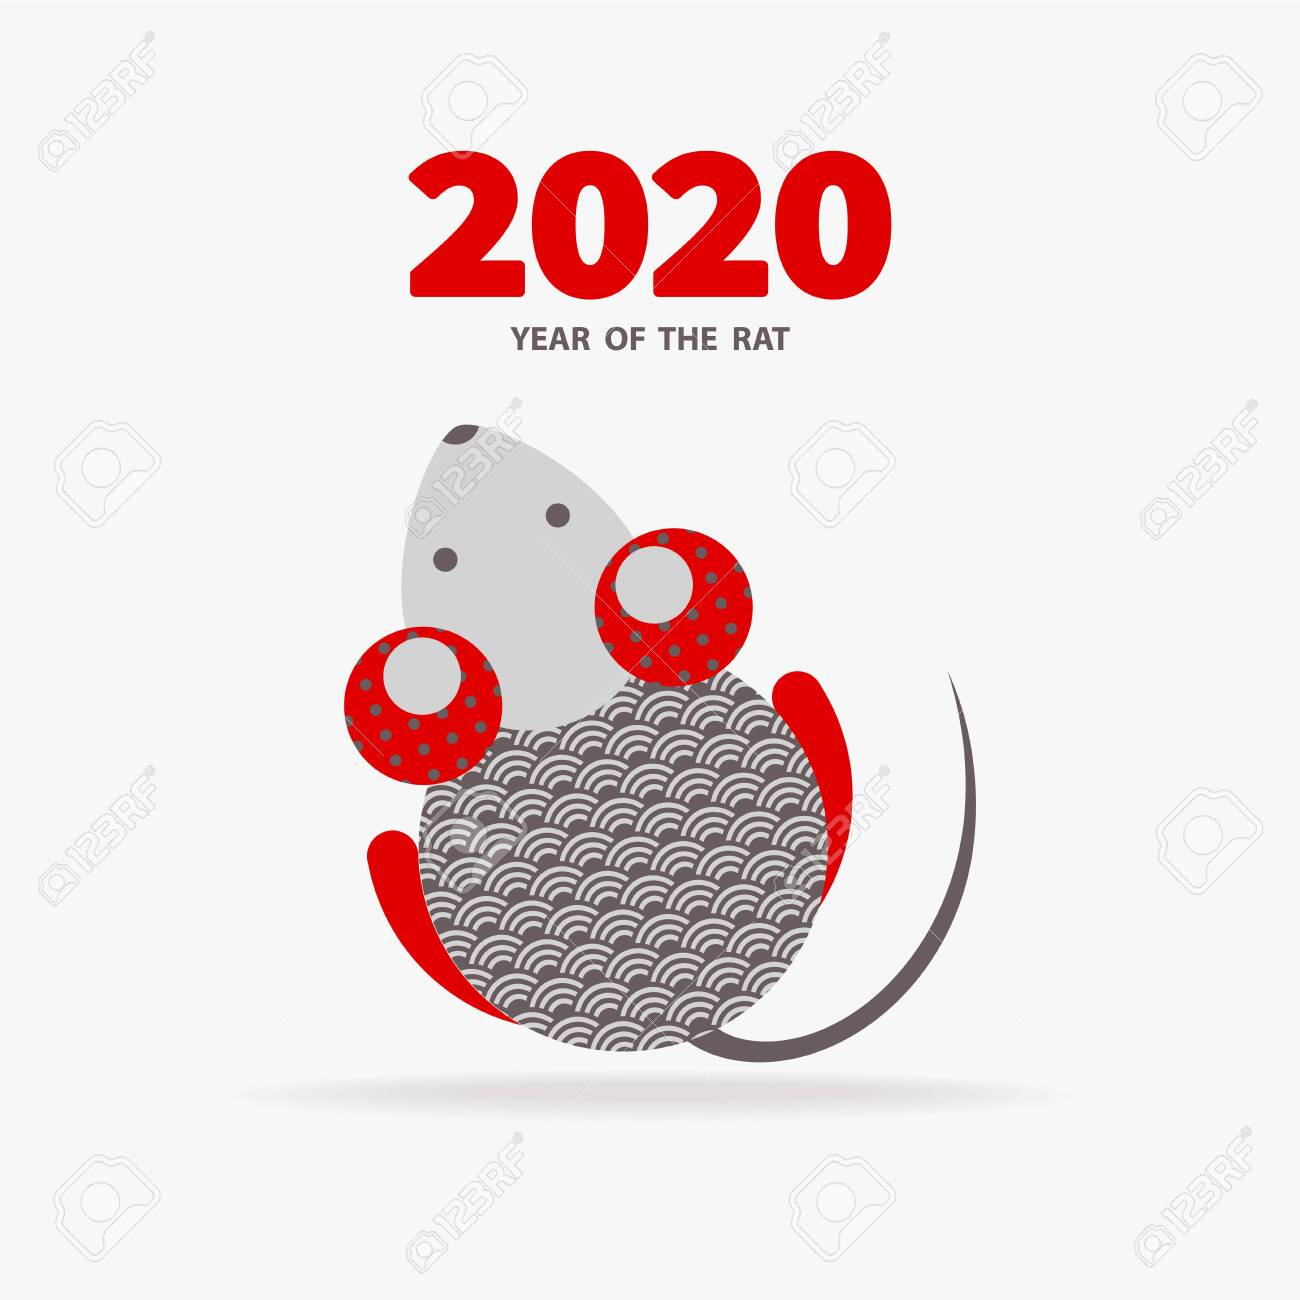 Chinese New Year Holiday 2020.Rat Is A Symbol Of The 2020 Chinese New Year Holiday Vector